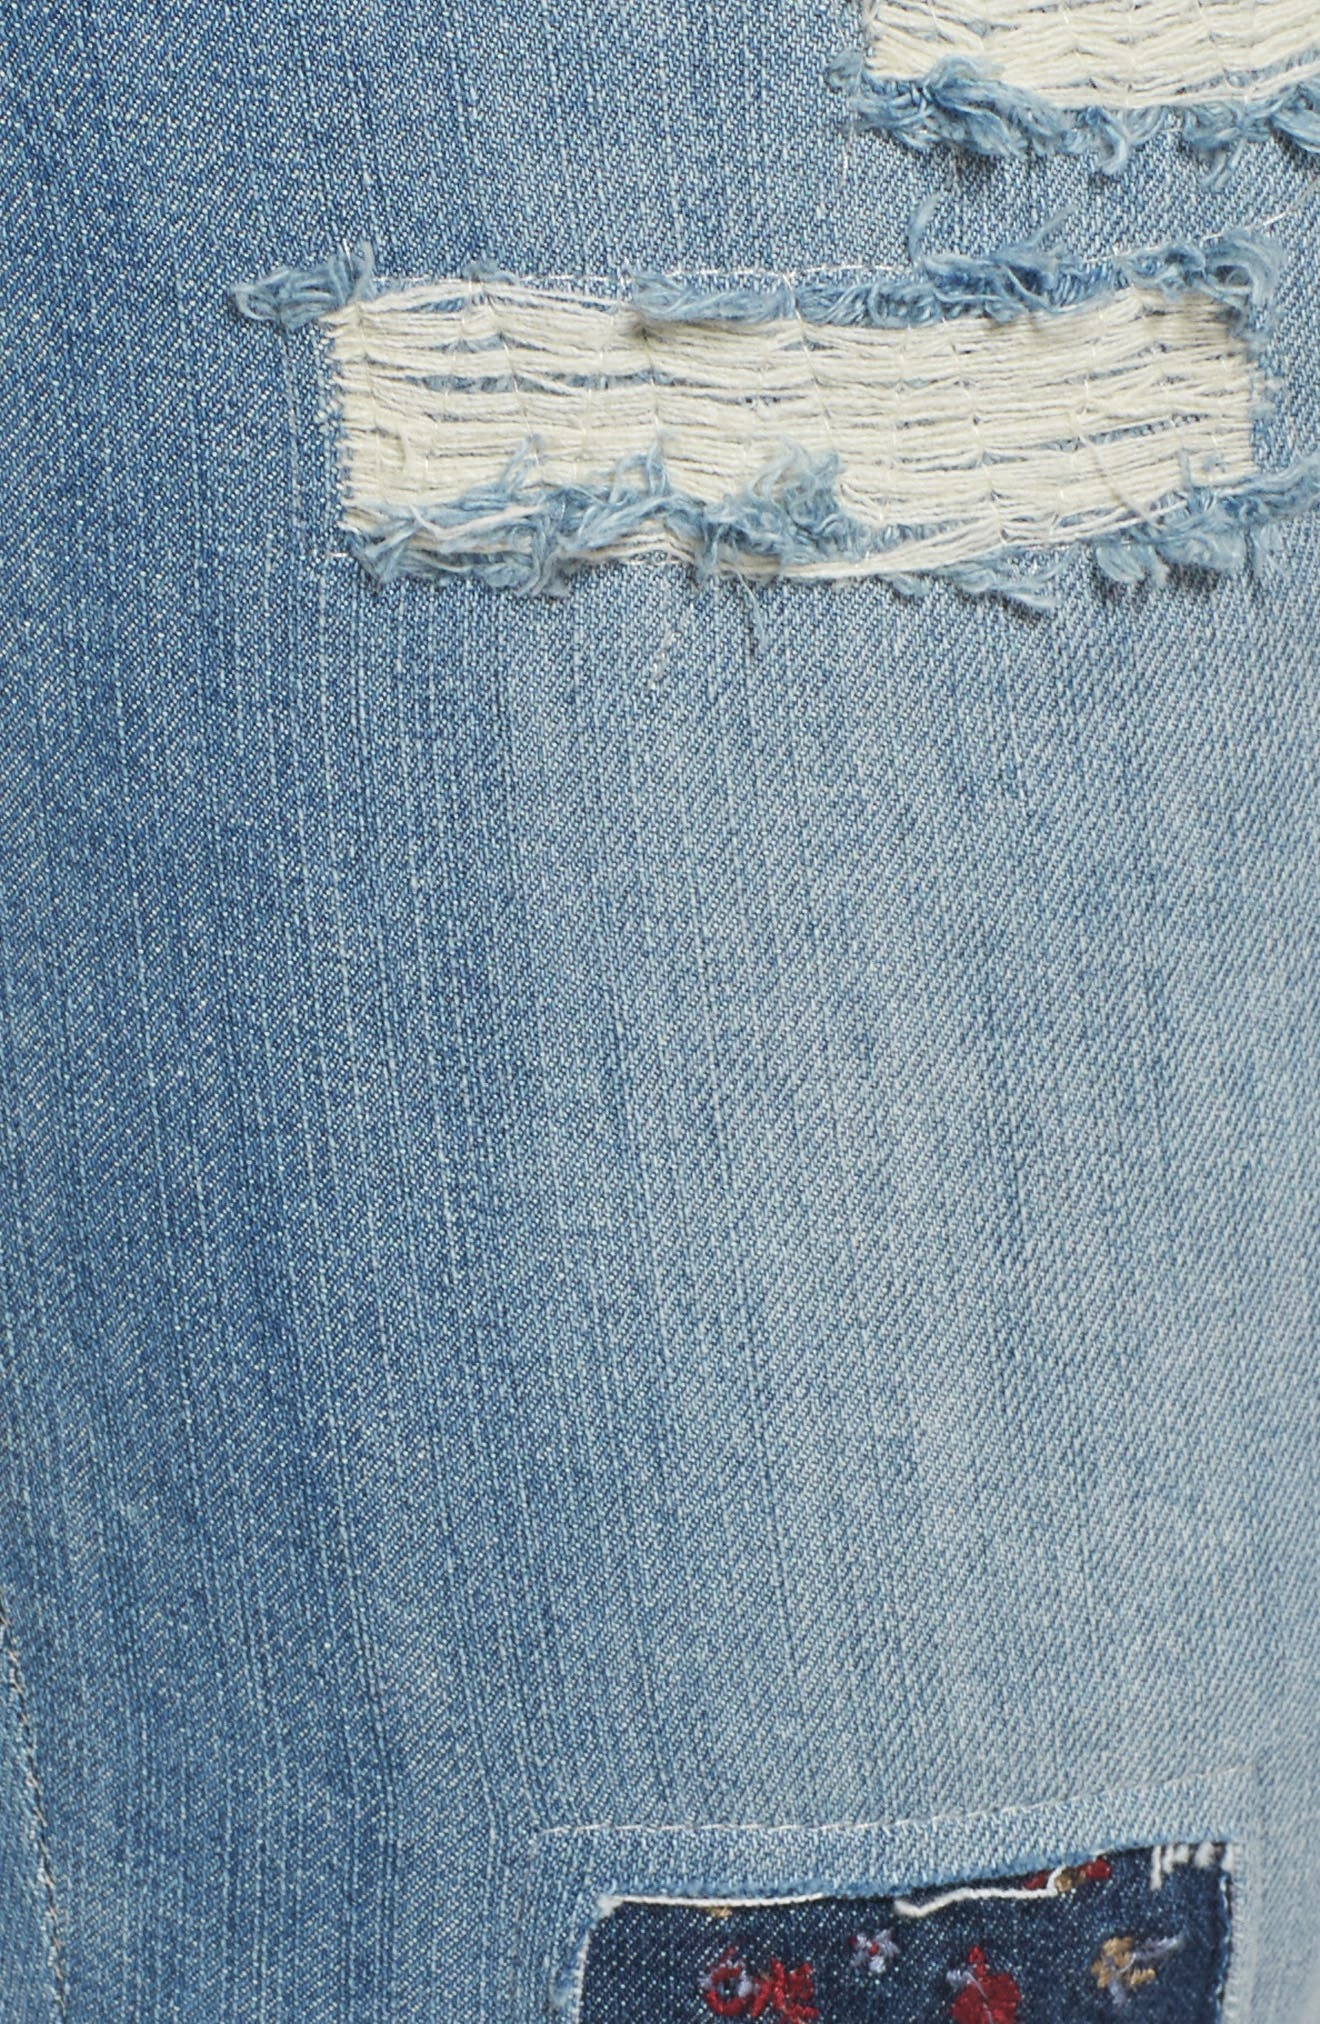 Alternate Image 5  - Wit & Wisdom Patch Detail Destructed Girlfriend Jeans (Plus Size) (Nordstrom Exclusive)